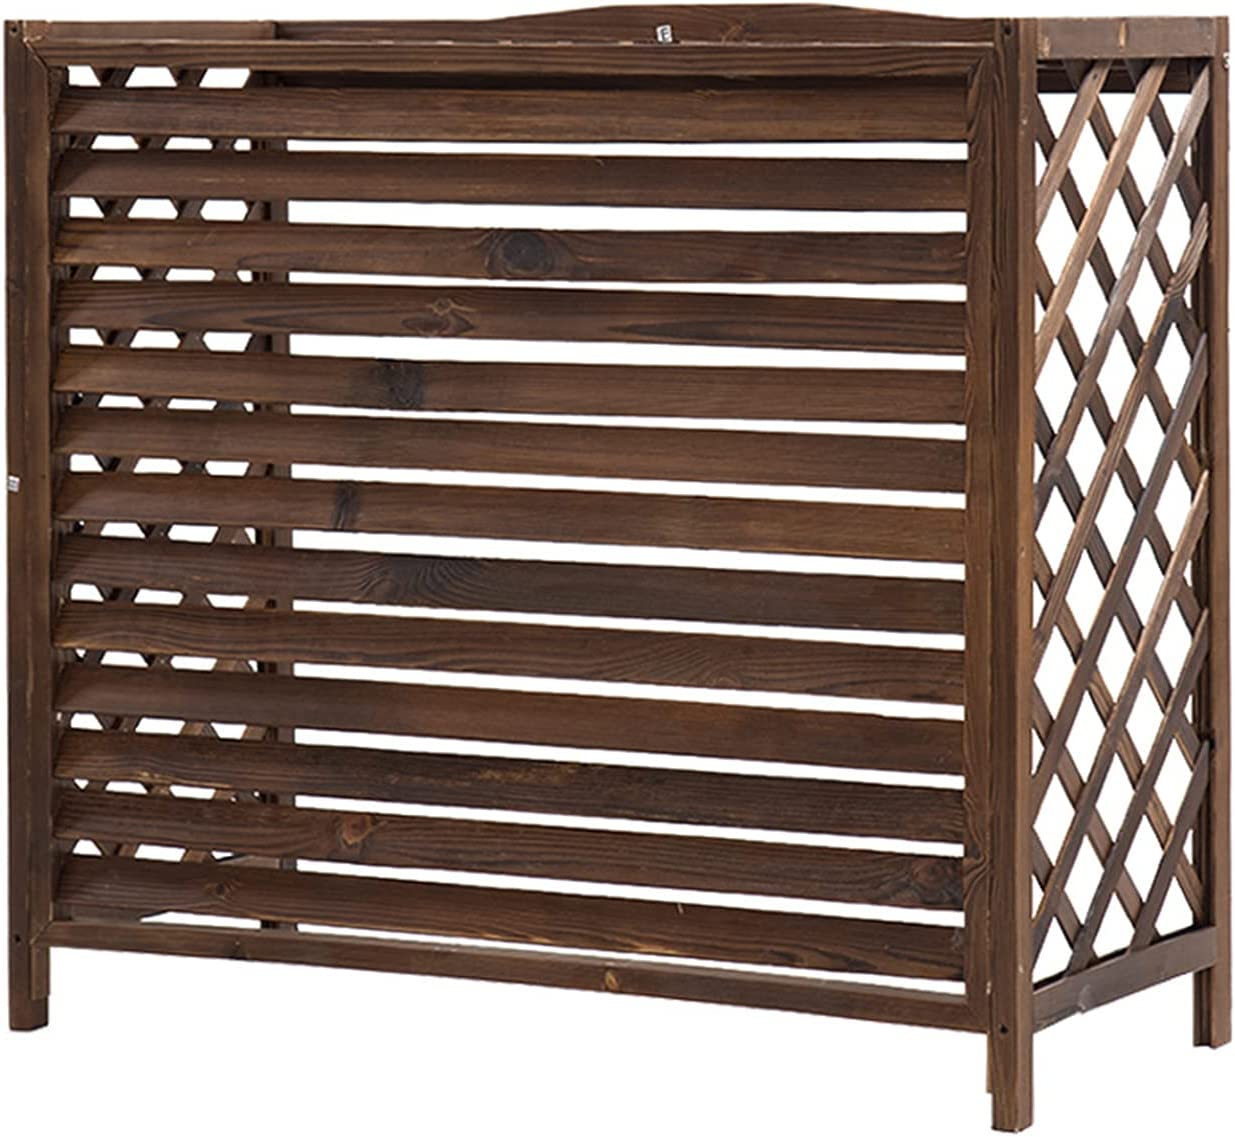 LSMK Rustic Air Conditioner Cover Wooden Plant Stand, Outdoor Air Conditioning Rack Frame Radiator Cover, with Blinds Grid Design, Easy to Care (Size : 86 × 35 × 80 cm)